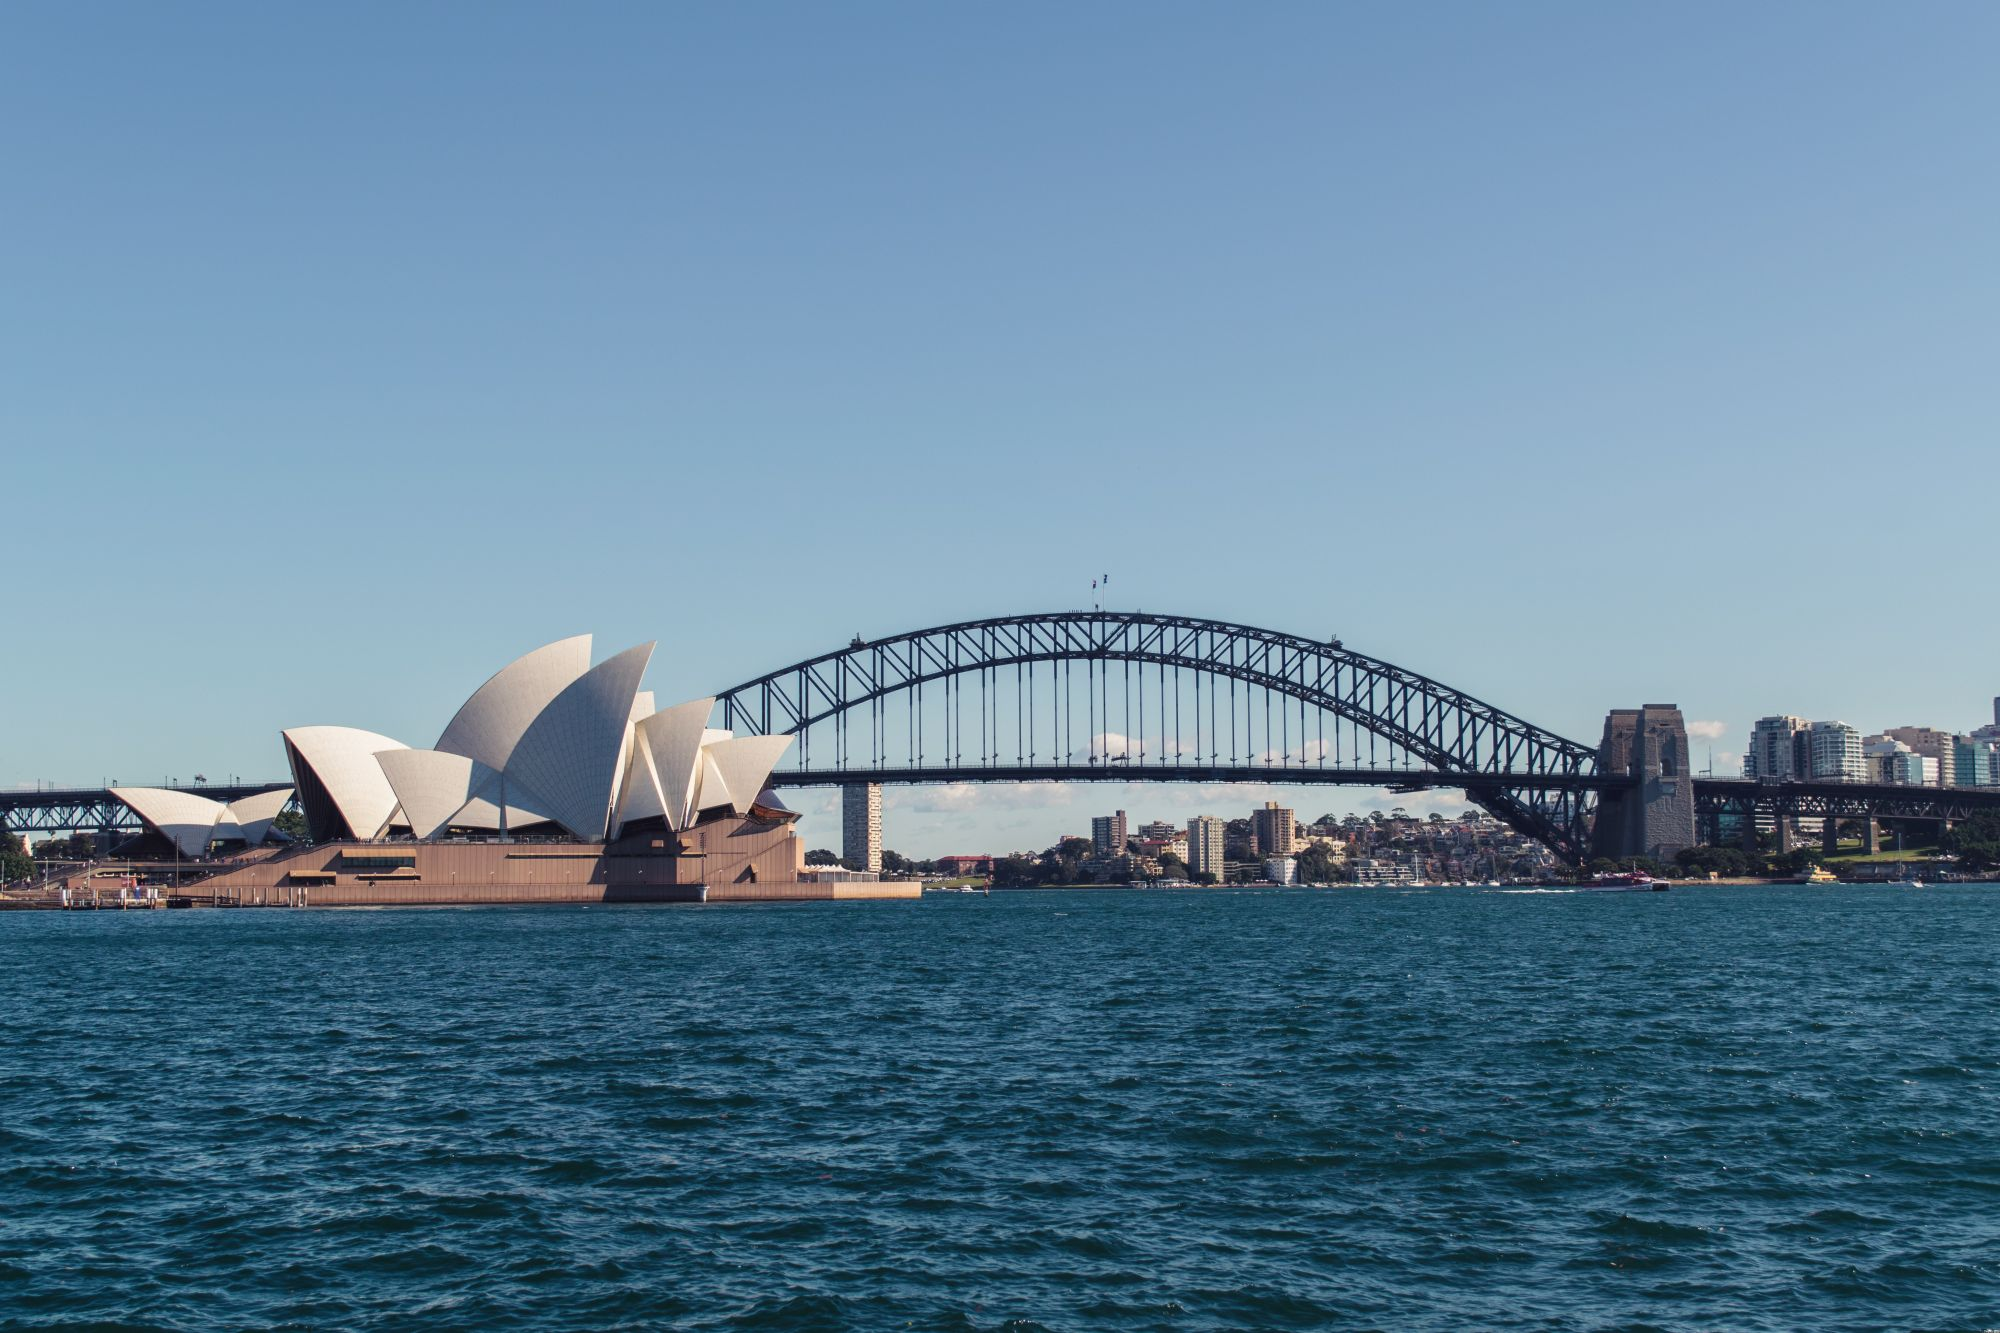 Australia and Singapore are Working on Establishing a Travel Bubble